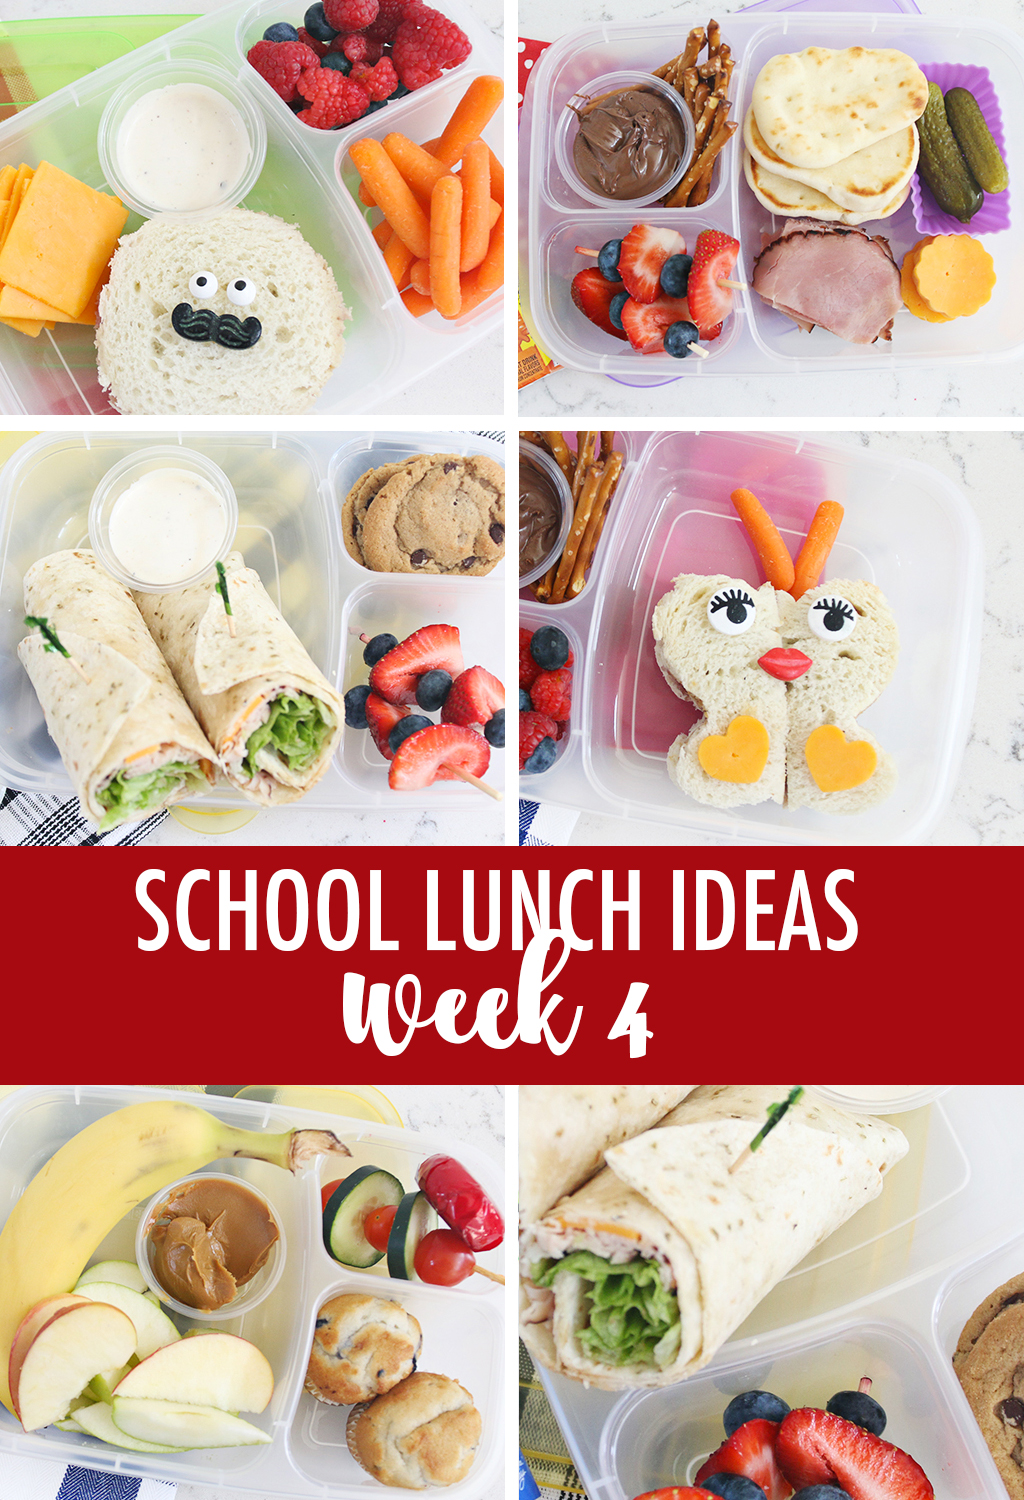 Lunch Ideas for School Week 4